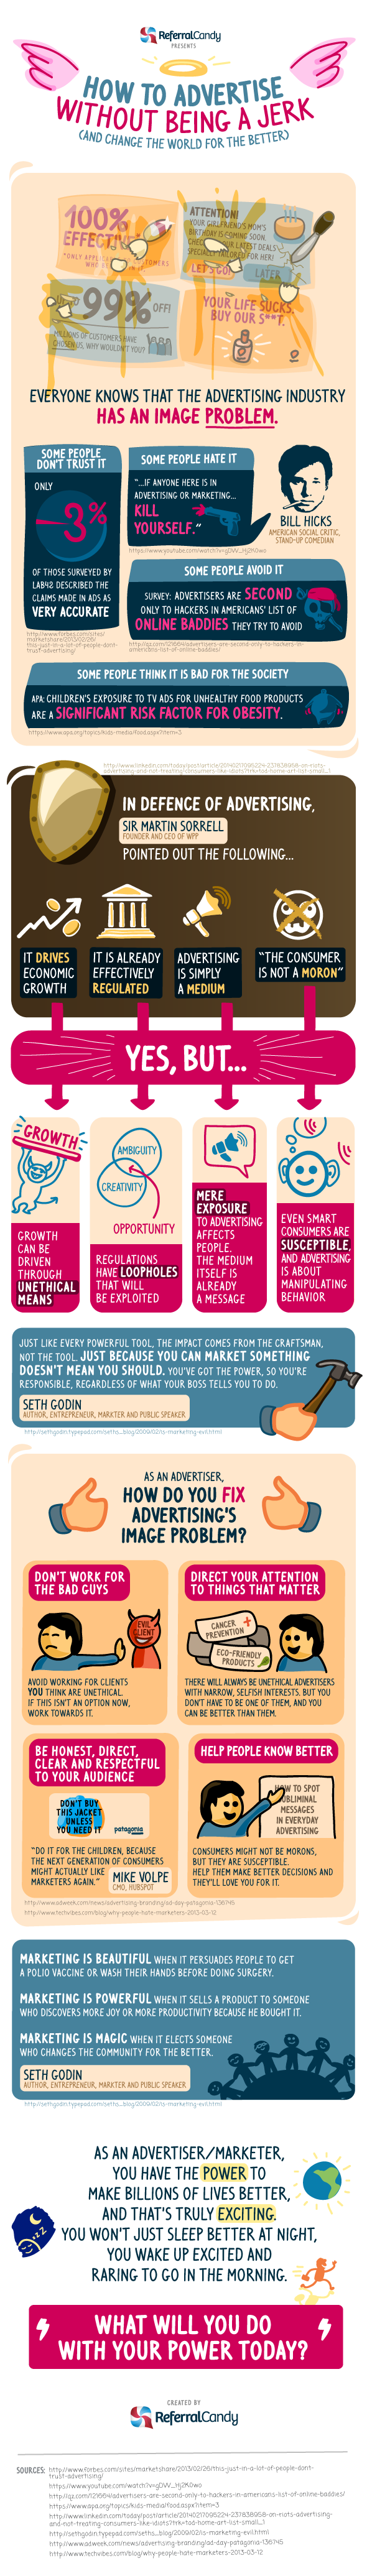 How to advertise without being a jerk (and change the world for the better) [Infographic]